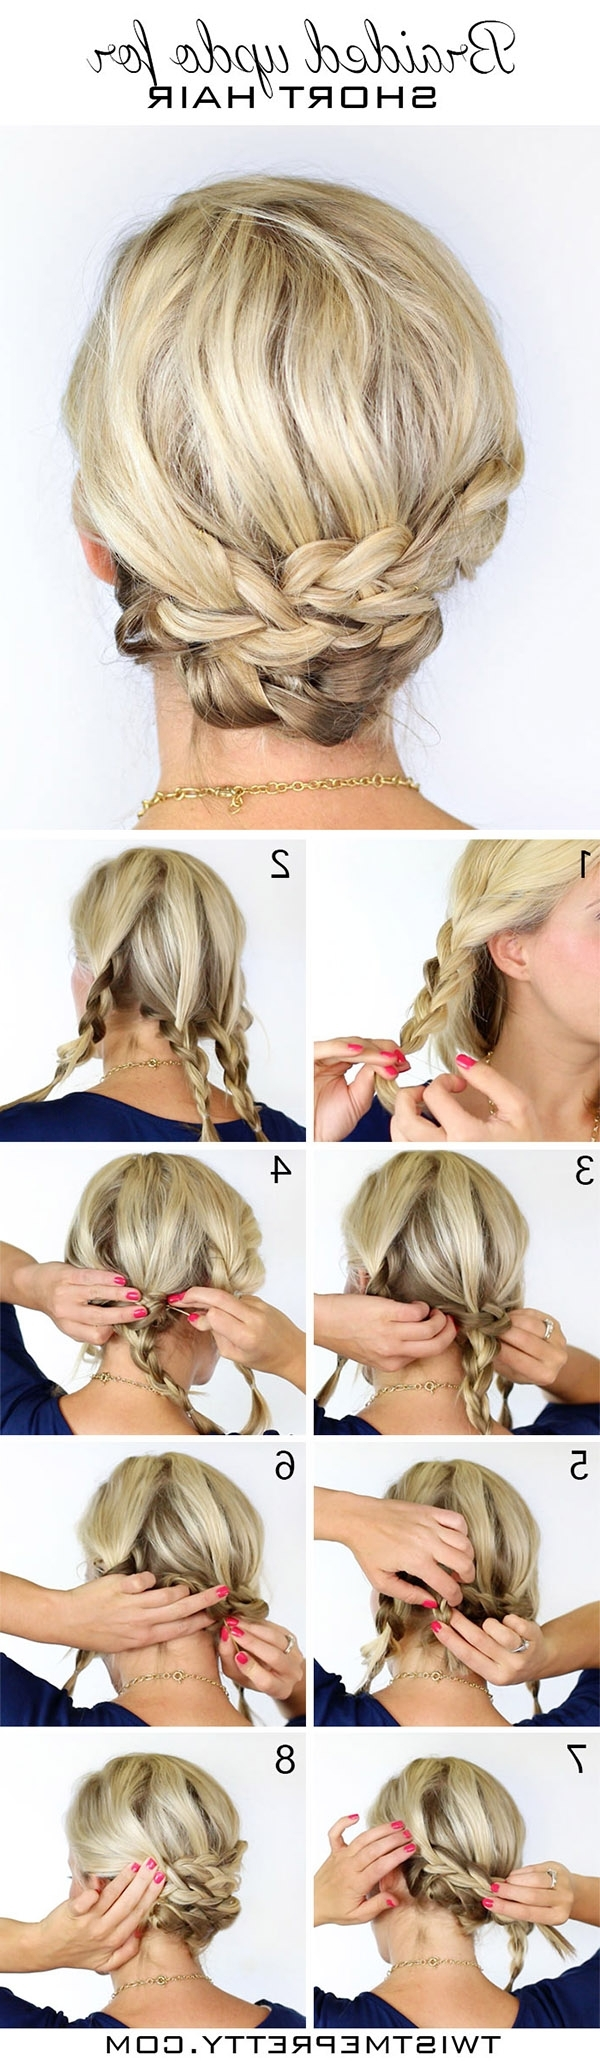 20 Diy Wedding Hairstyles With Tutorials To Try On Your Own Easy Wedding Hairstyles For Medium Hair